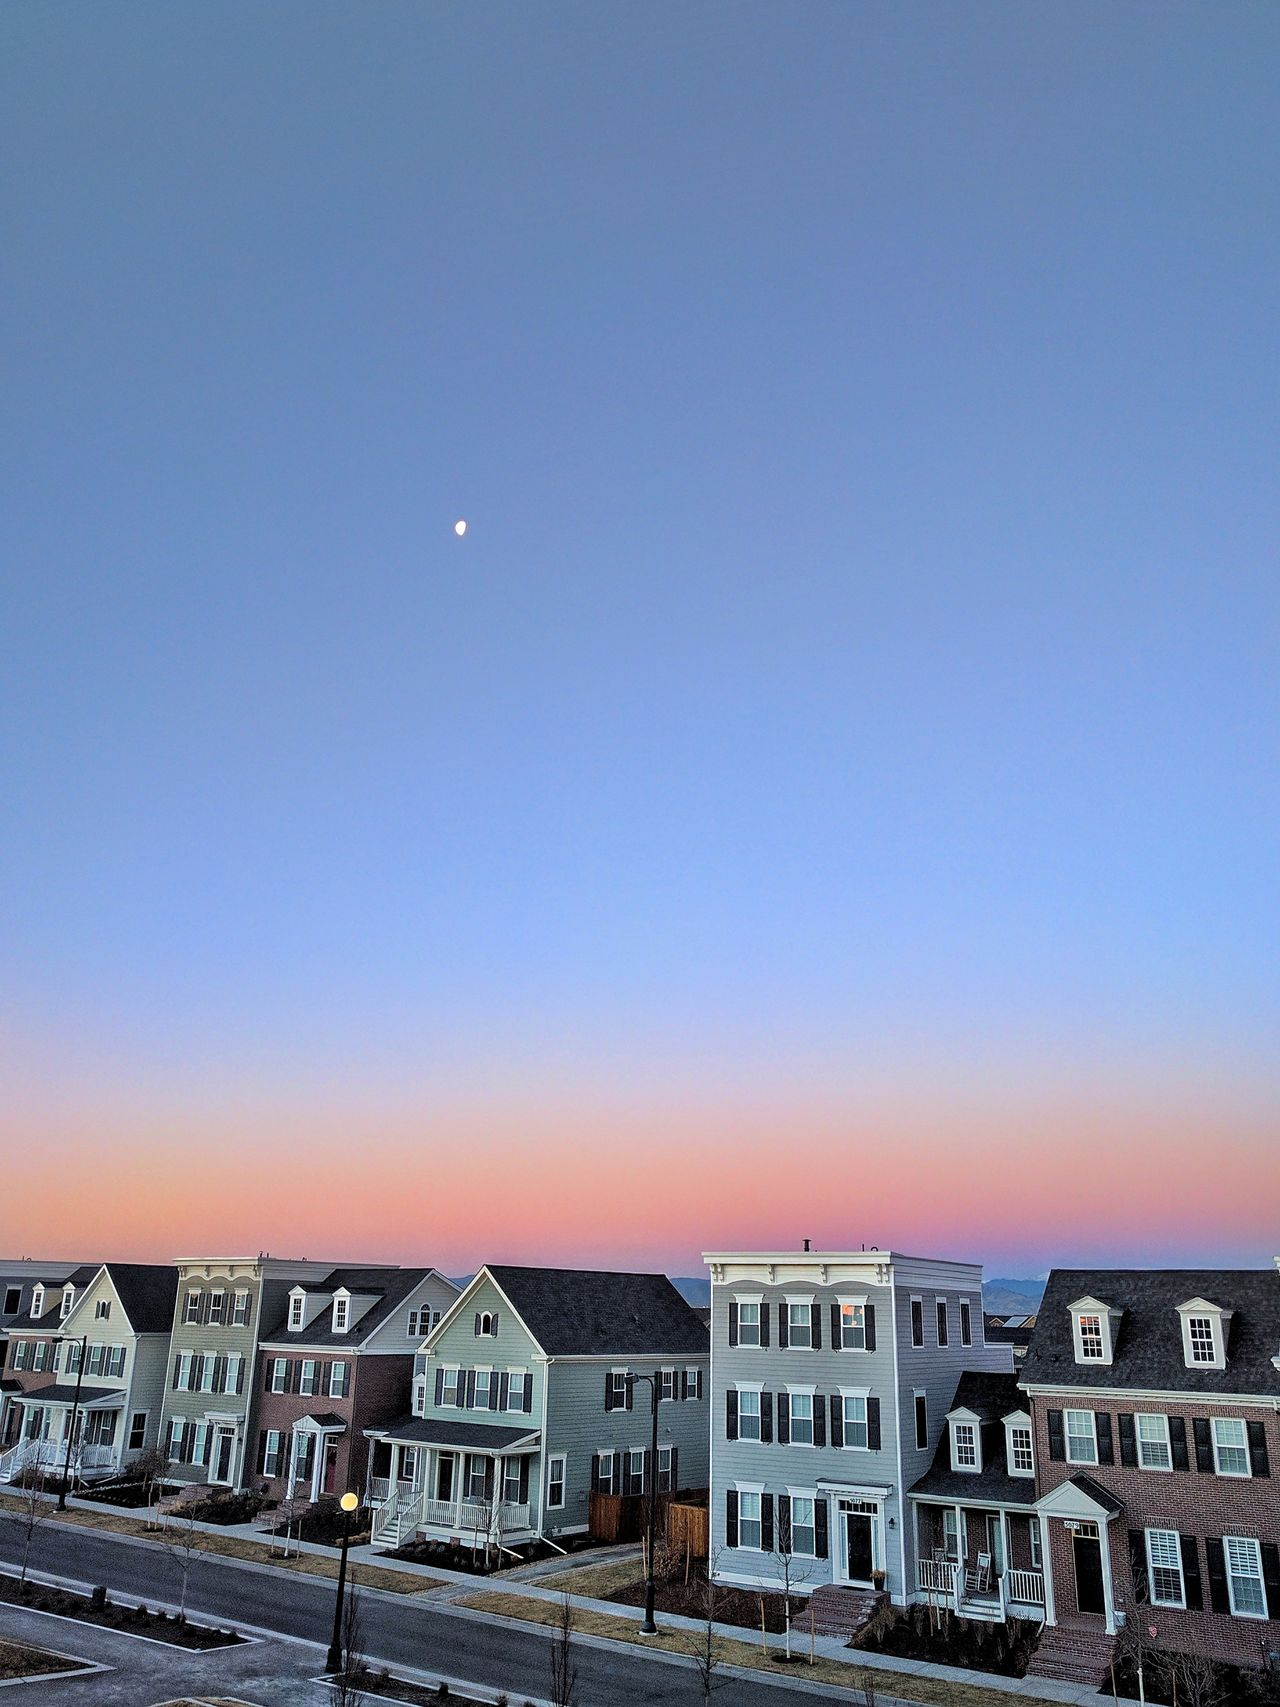 Architecture Building Exterior Built Structure City Clear Sky Day House Moon No People Outdoors Residential Building Sky